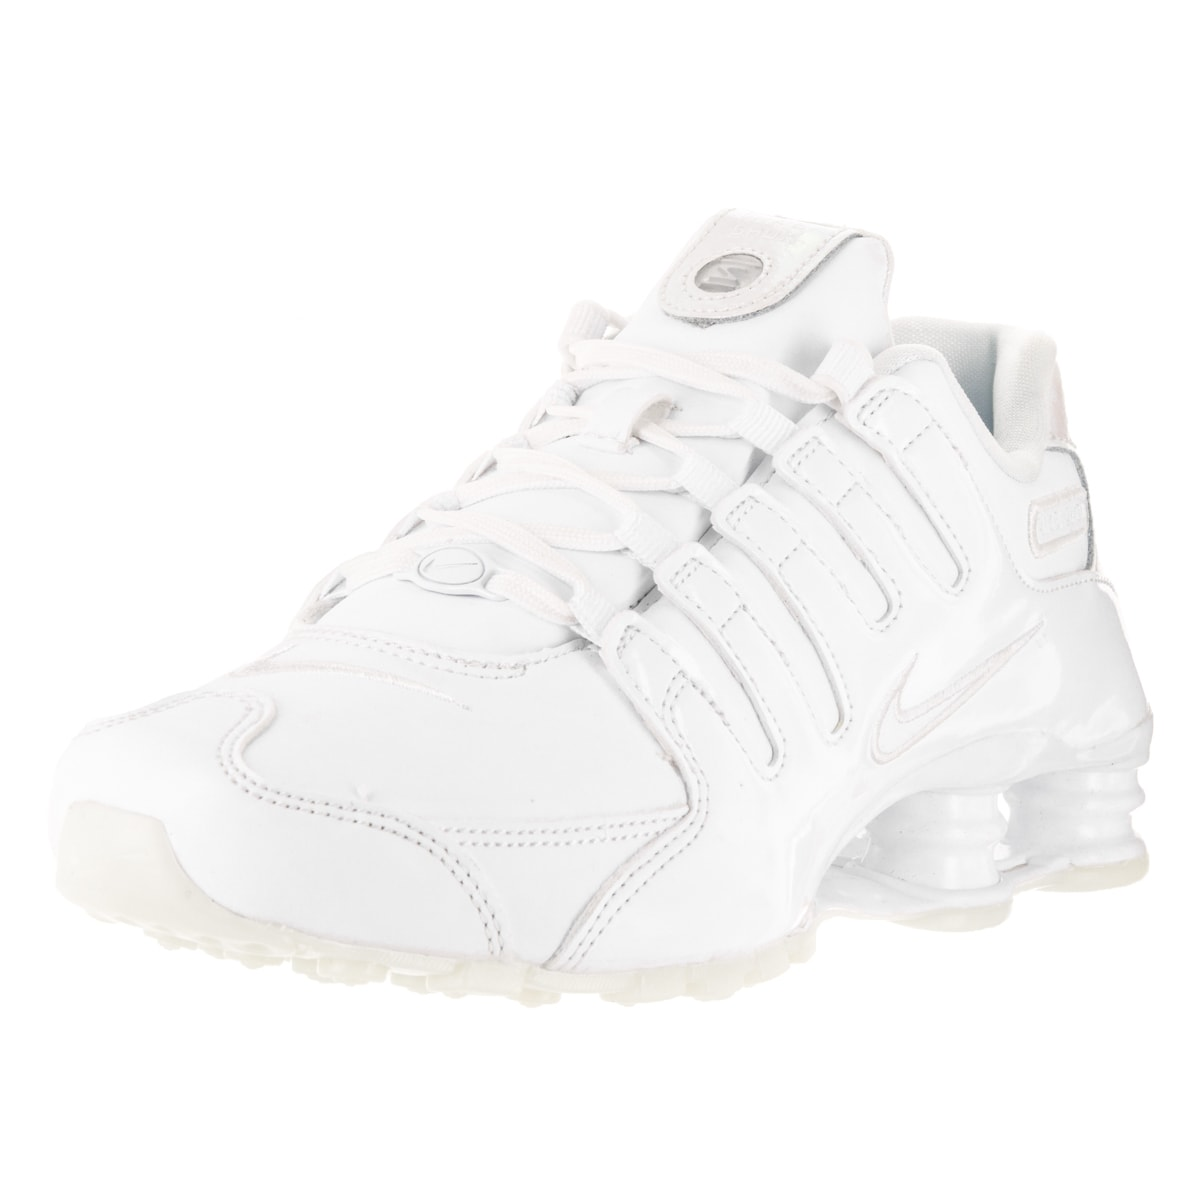 Shop Nike Women s Shox NZ White White Blue Tint White Leather Running Shoe  - Free Shipping Today - Overstock - 13343946 6d4004af8